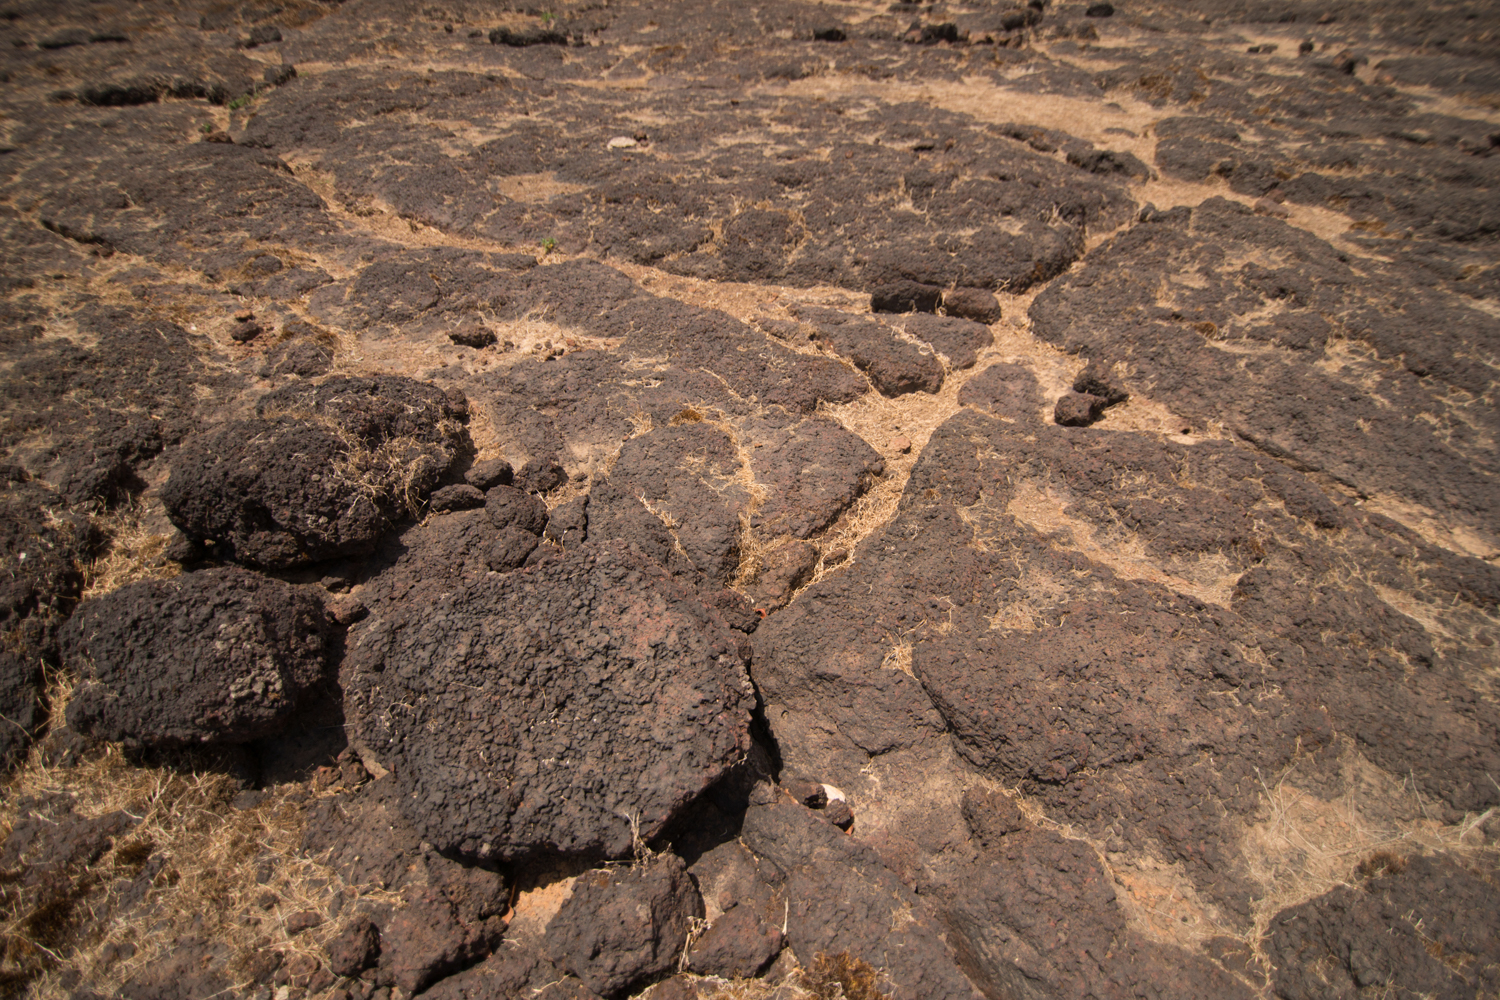 Lateritic soils are rich in aluminium and iron. Rocks on the Chalkewadi plateau, in the Satara district, show typical signs of weathering with the reddish tinges formed by rusting iron.